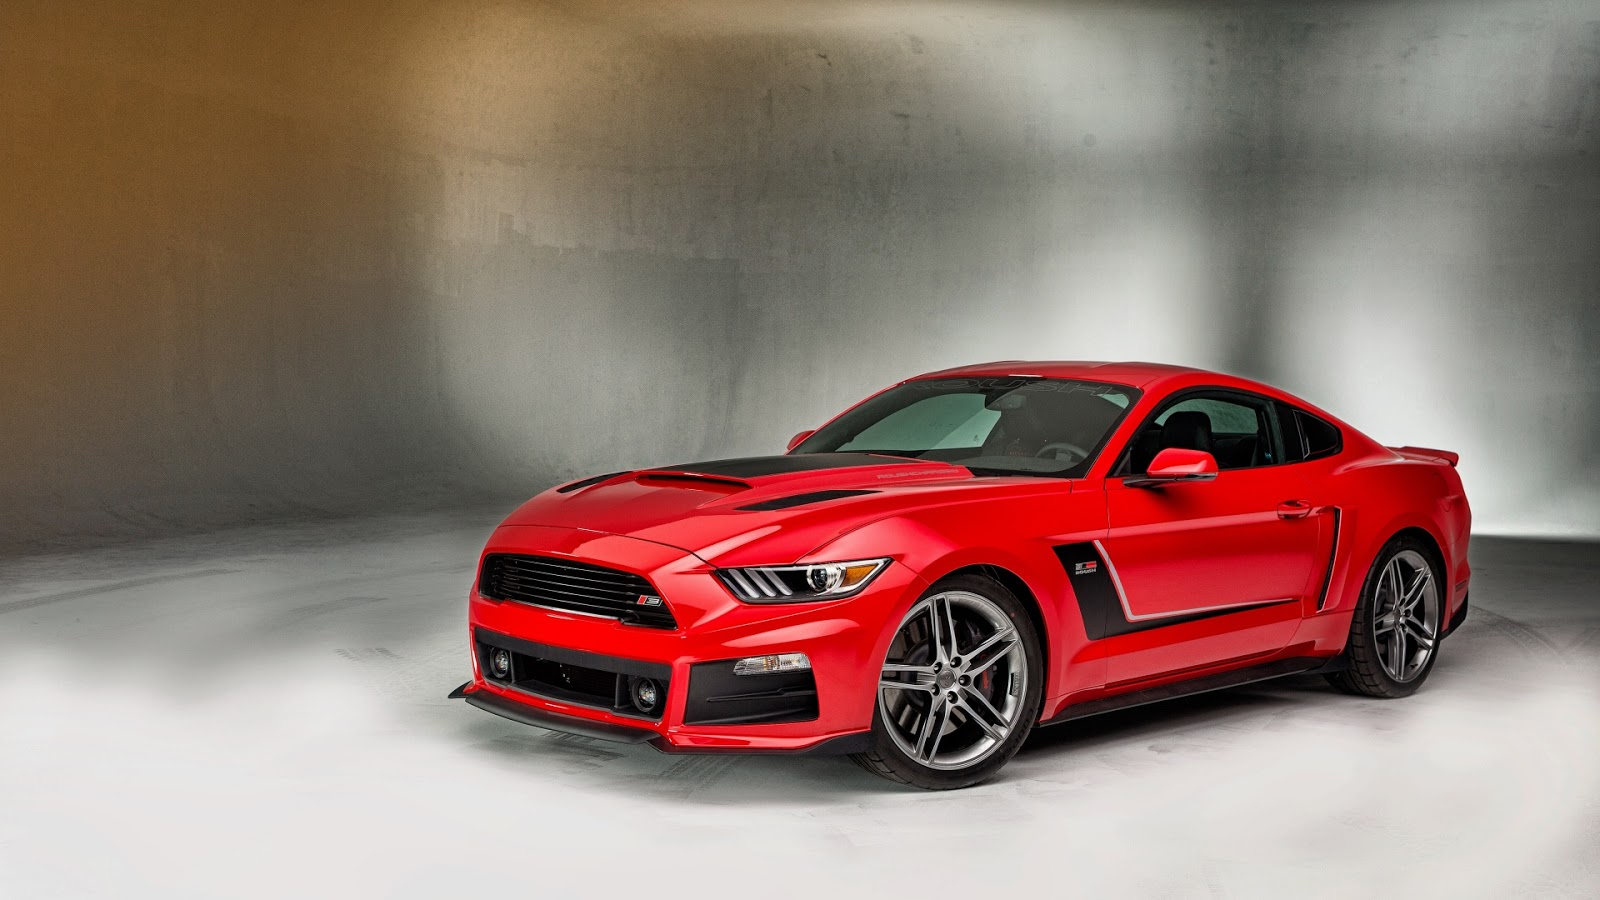 Ford Mustang Wallpaper Download